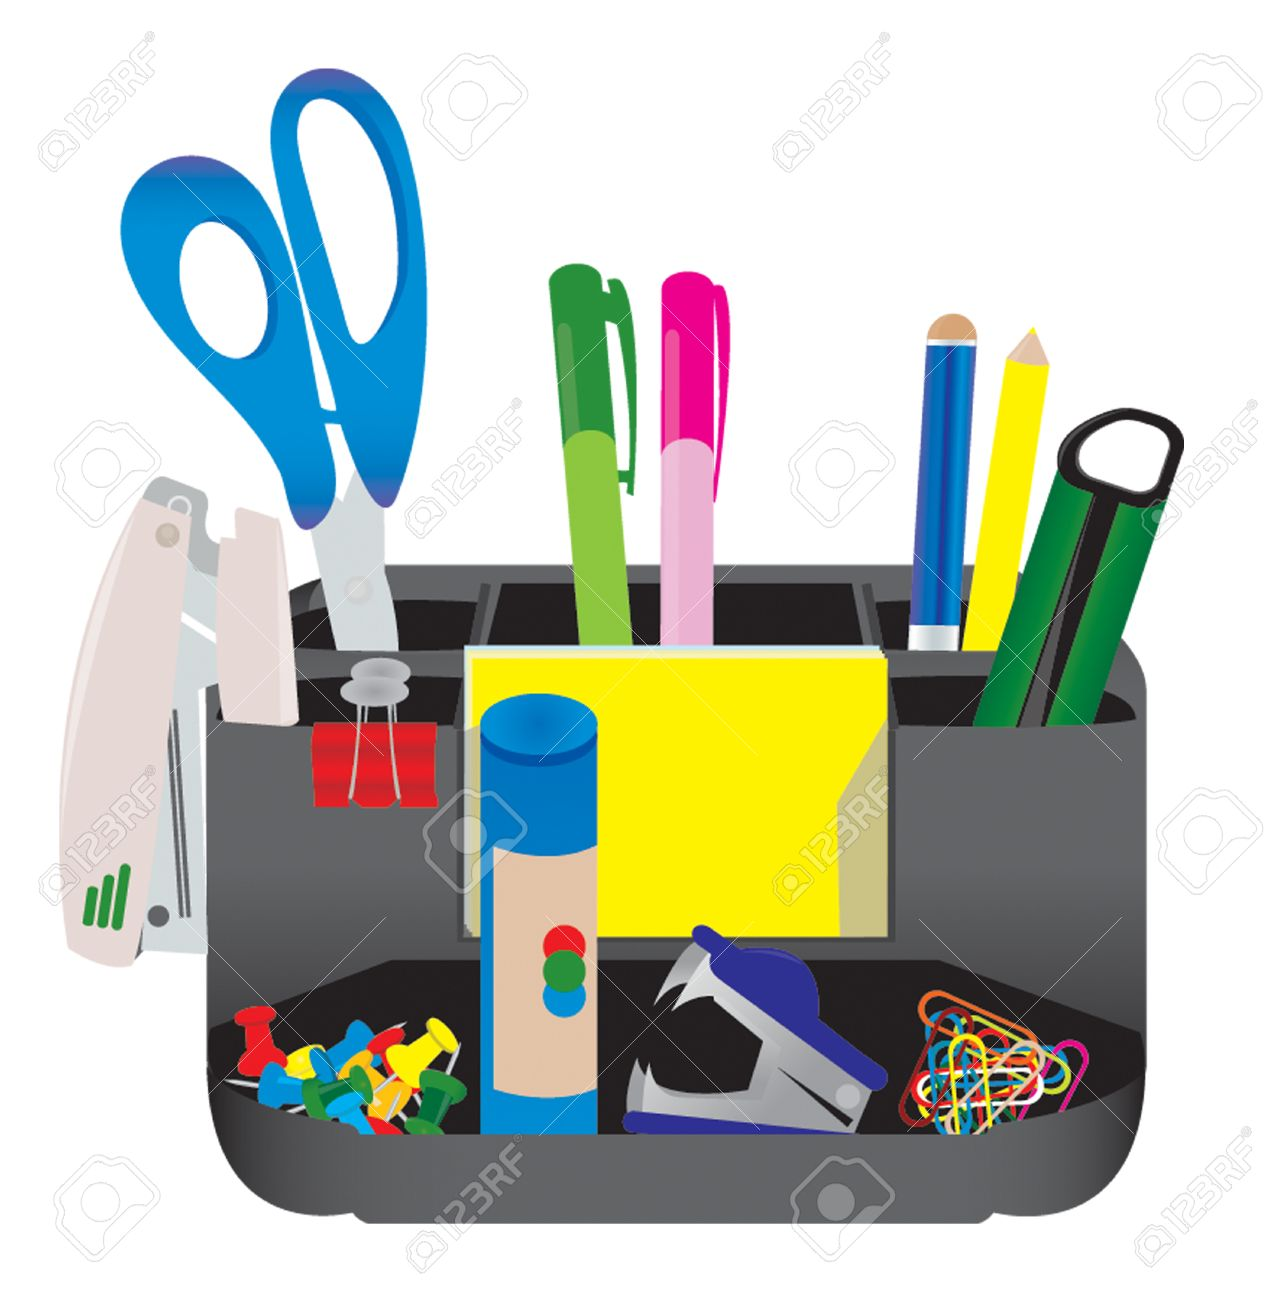 Office tools Stock Vector - 4882401